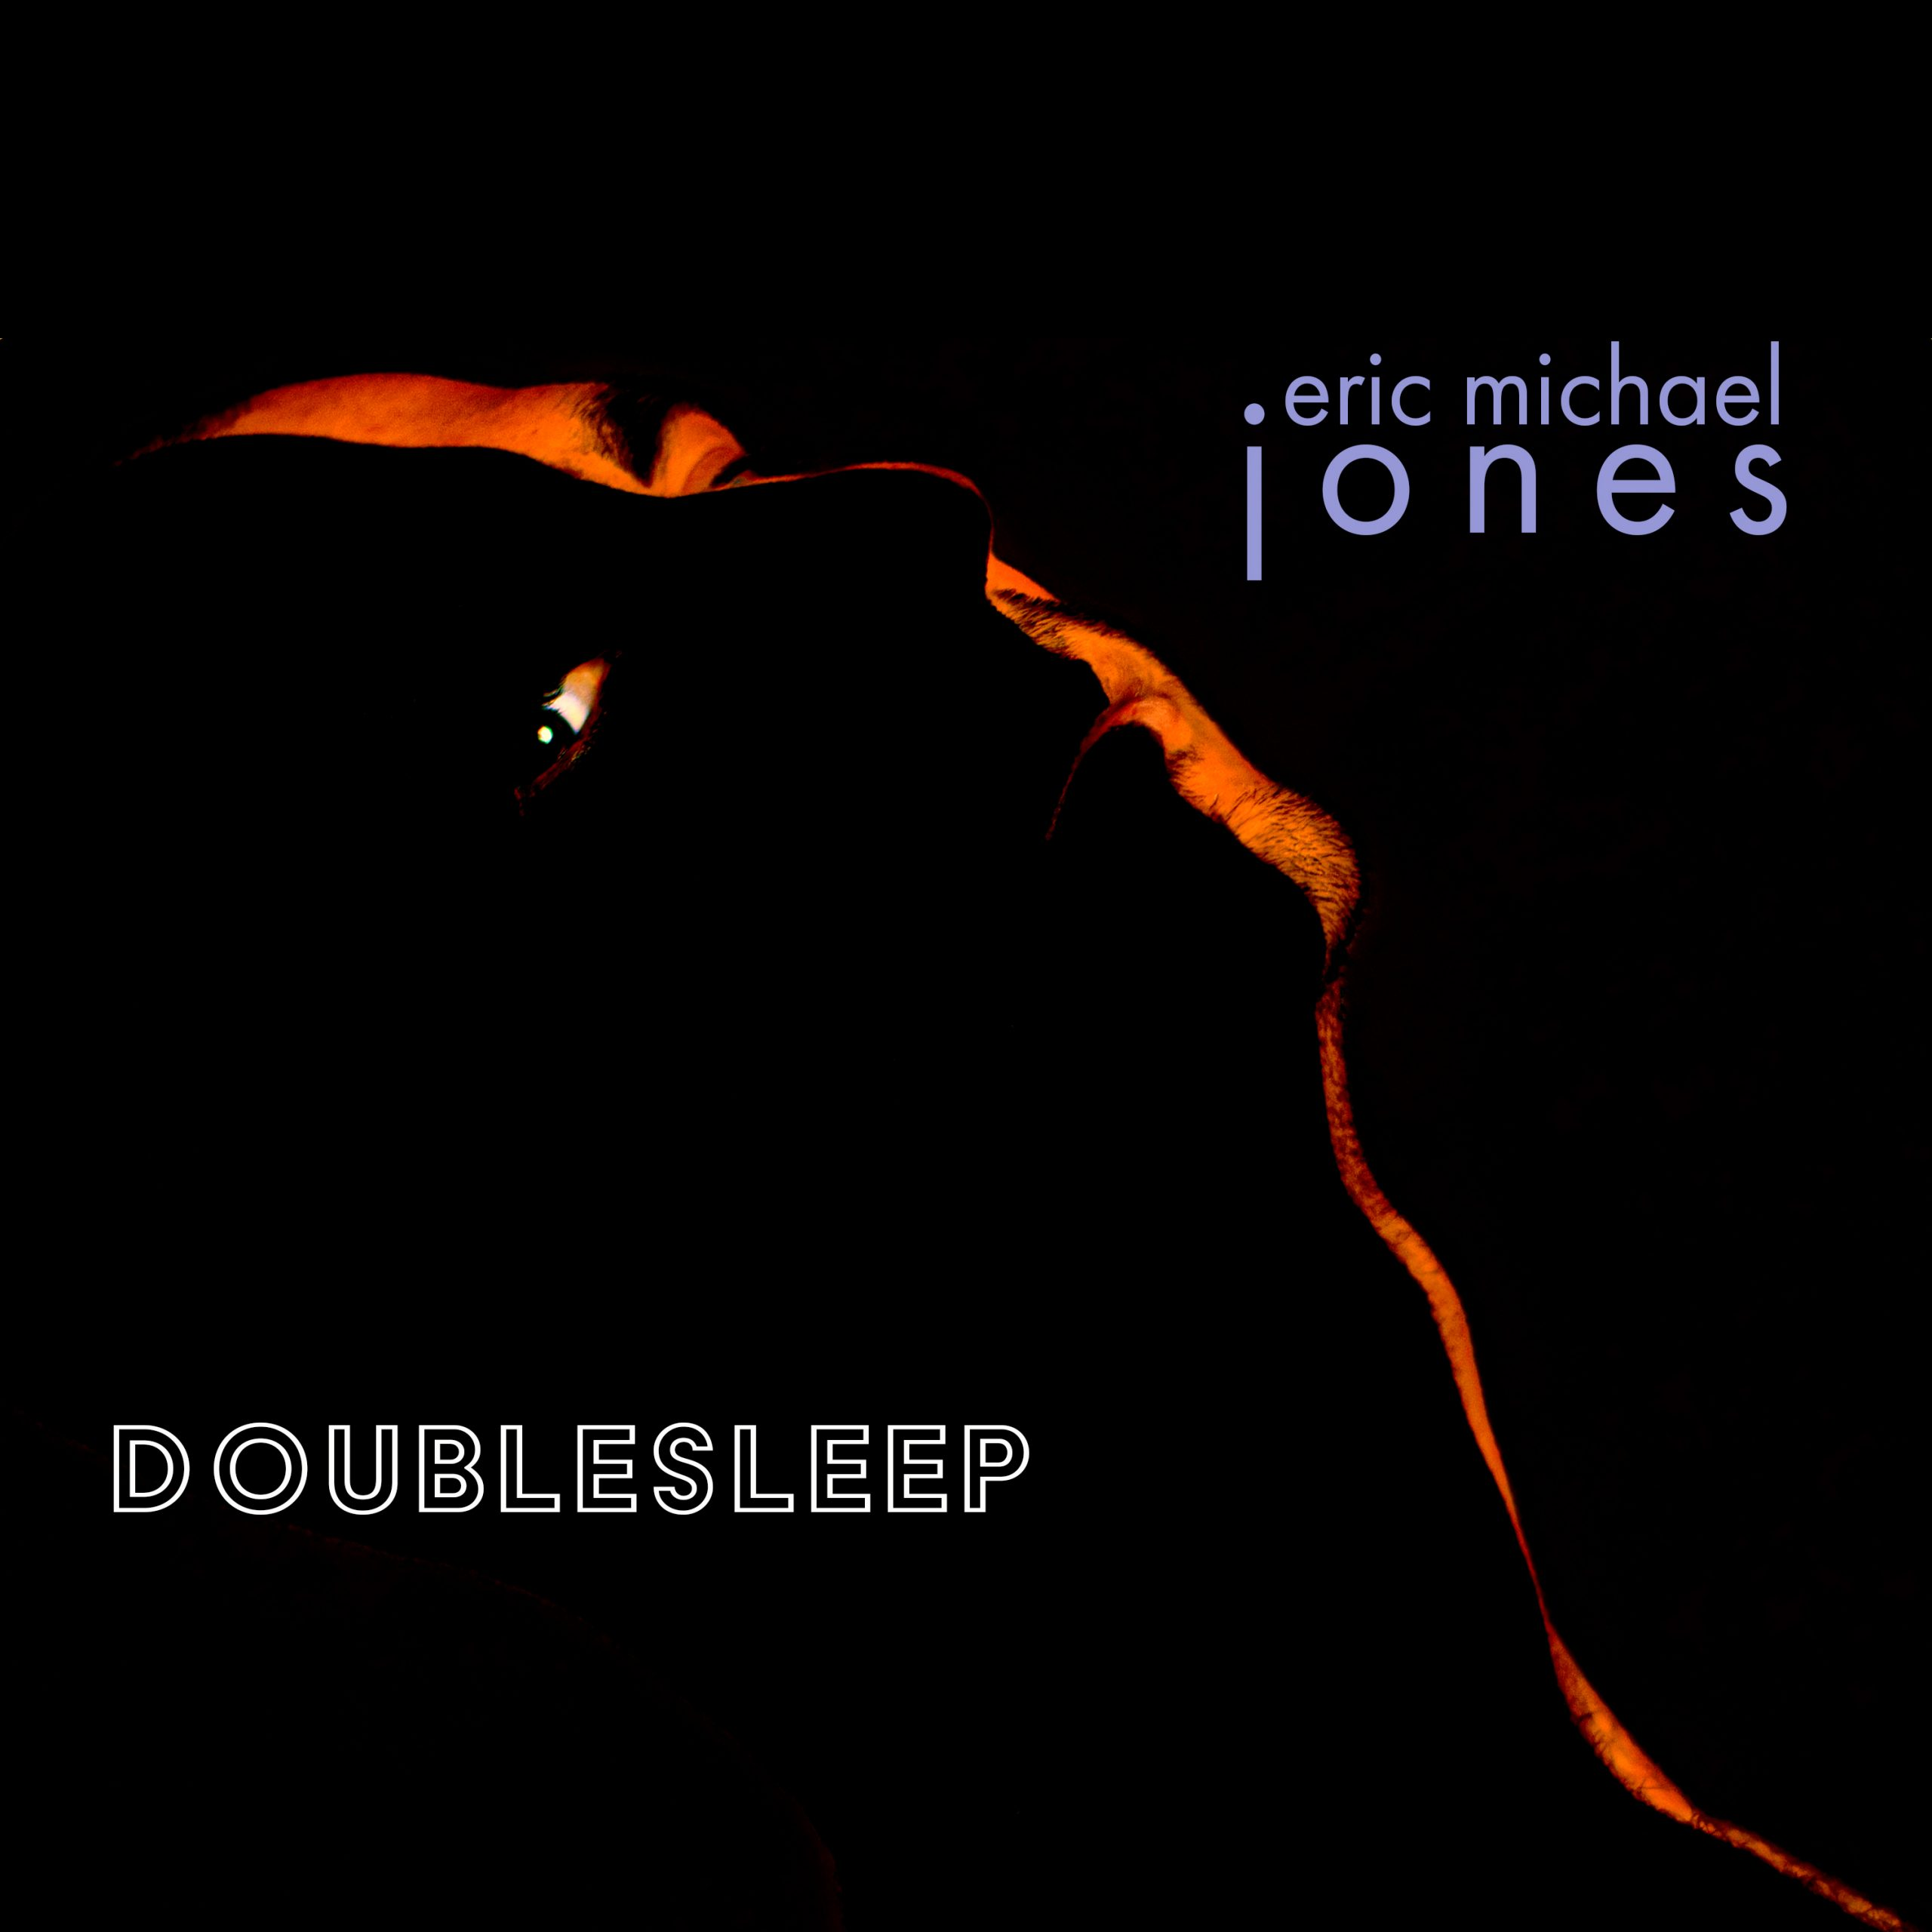 Cover art for Doublesleep, showing the dimly lit outline of a man's face